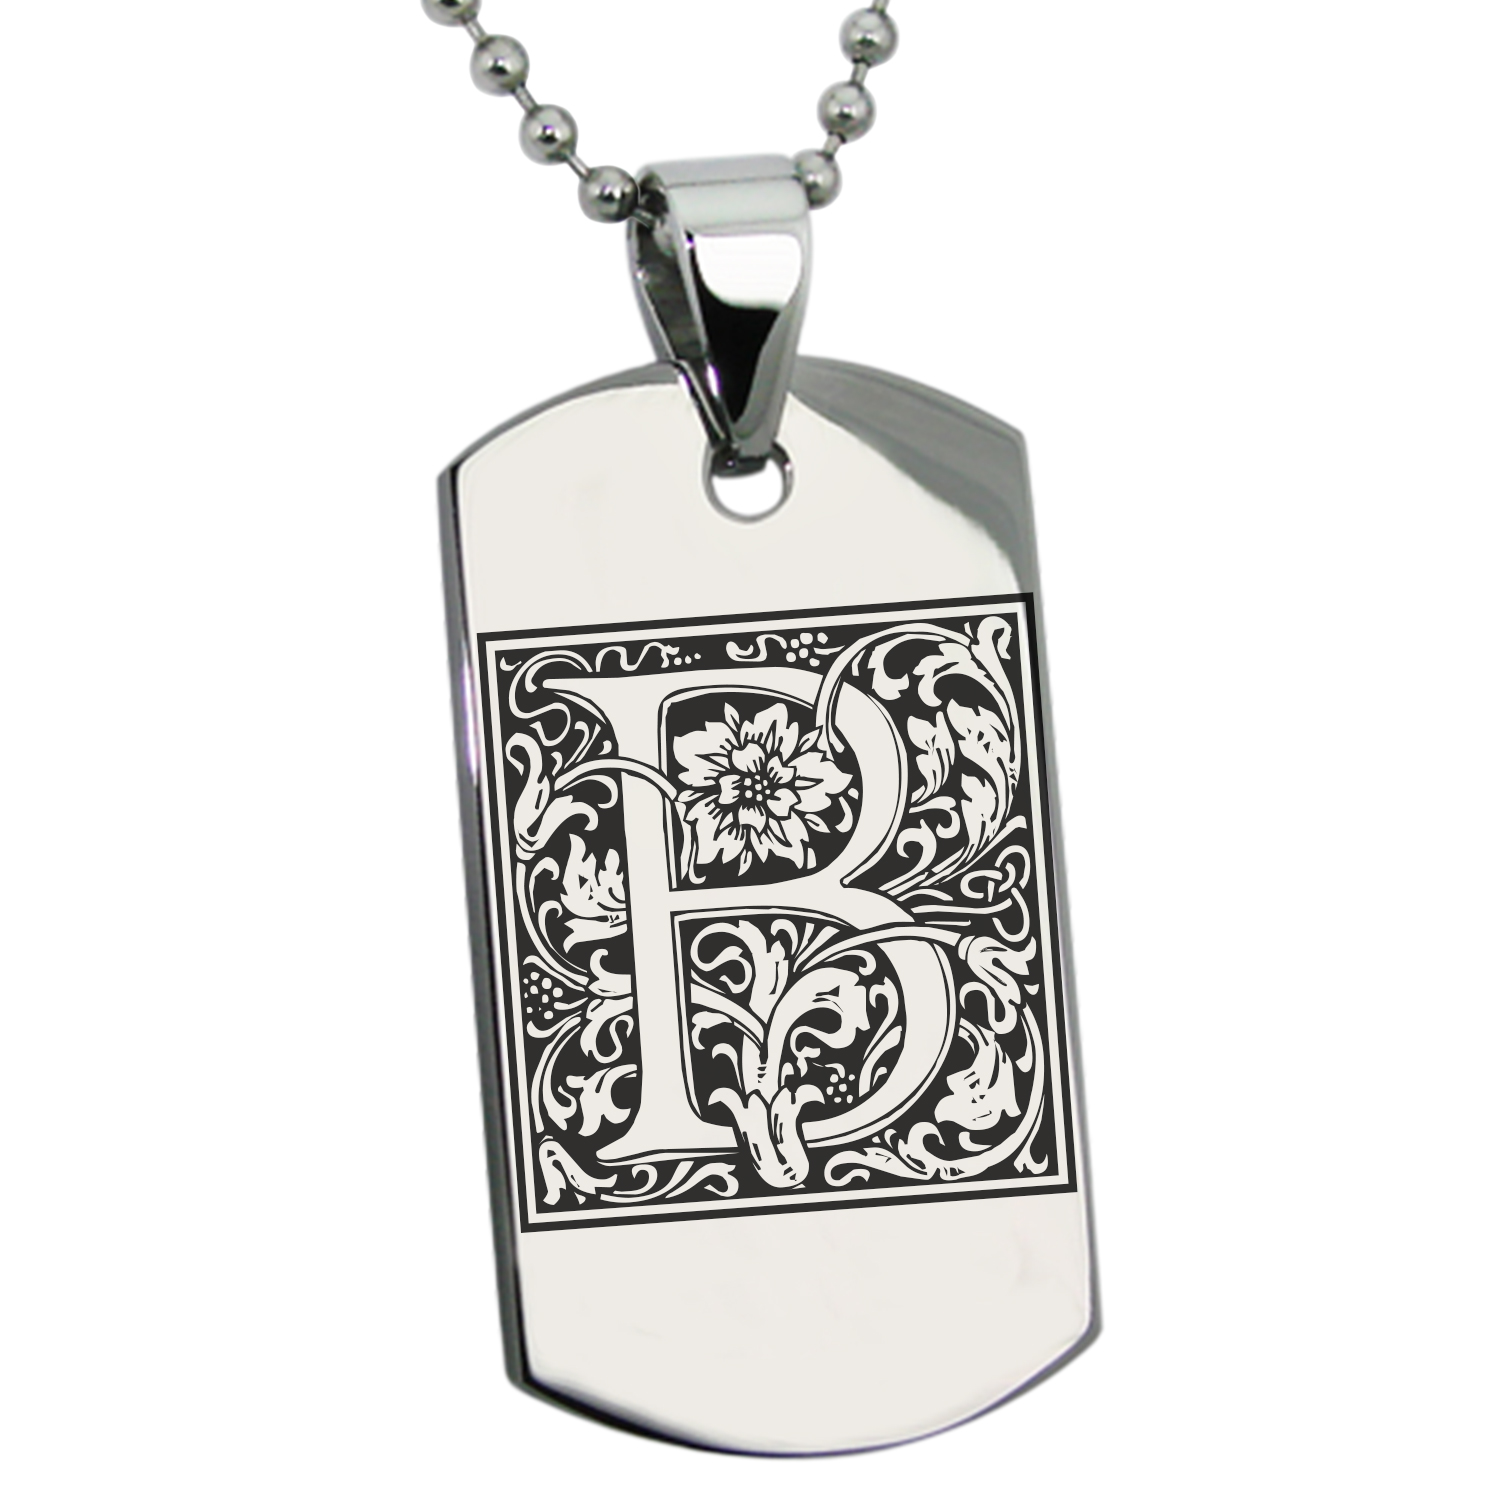 Stainless Steel Letter B Initial Floral Monogram Engraved Dog Tag Pendant